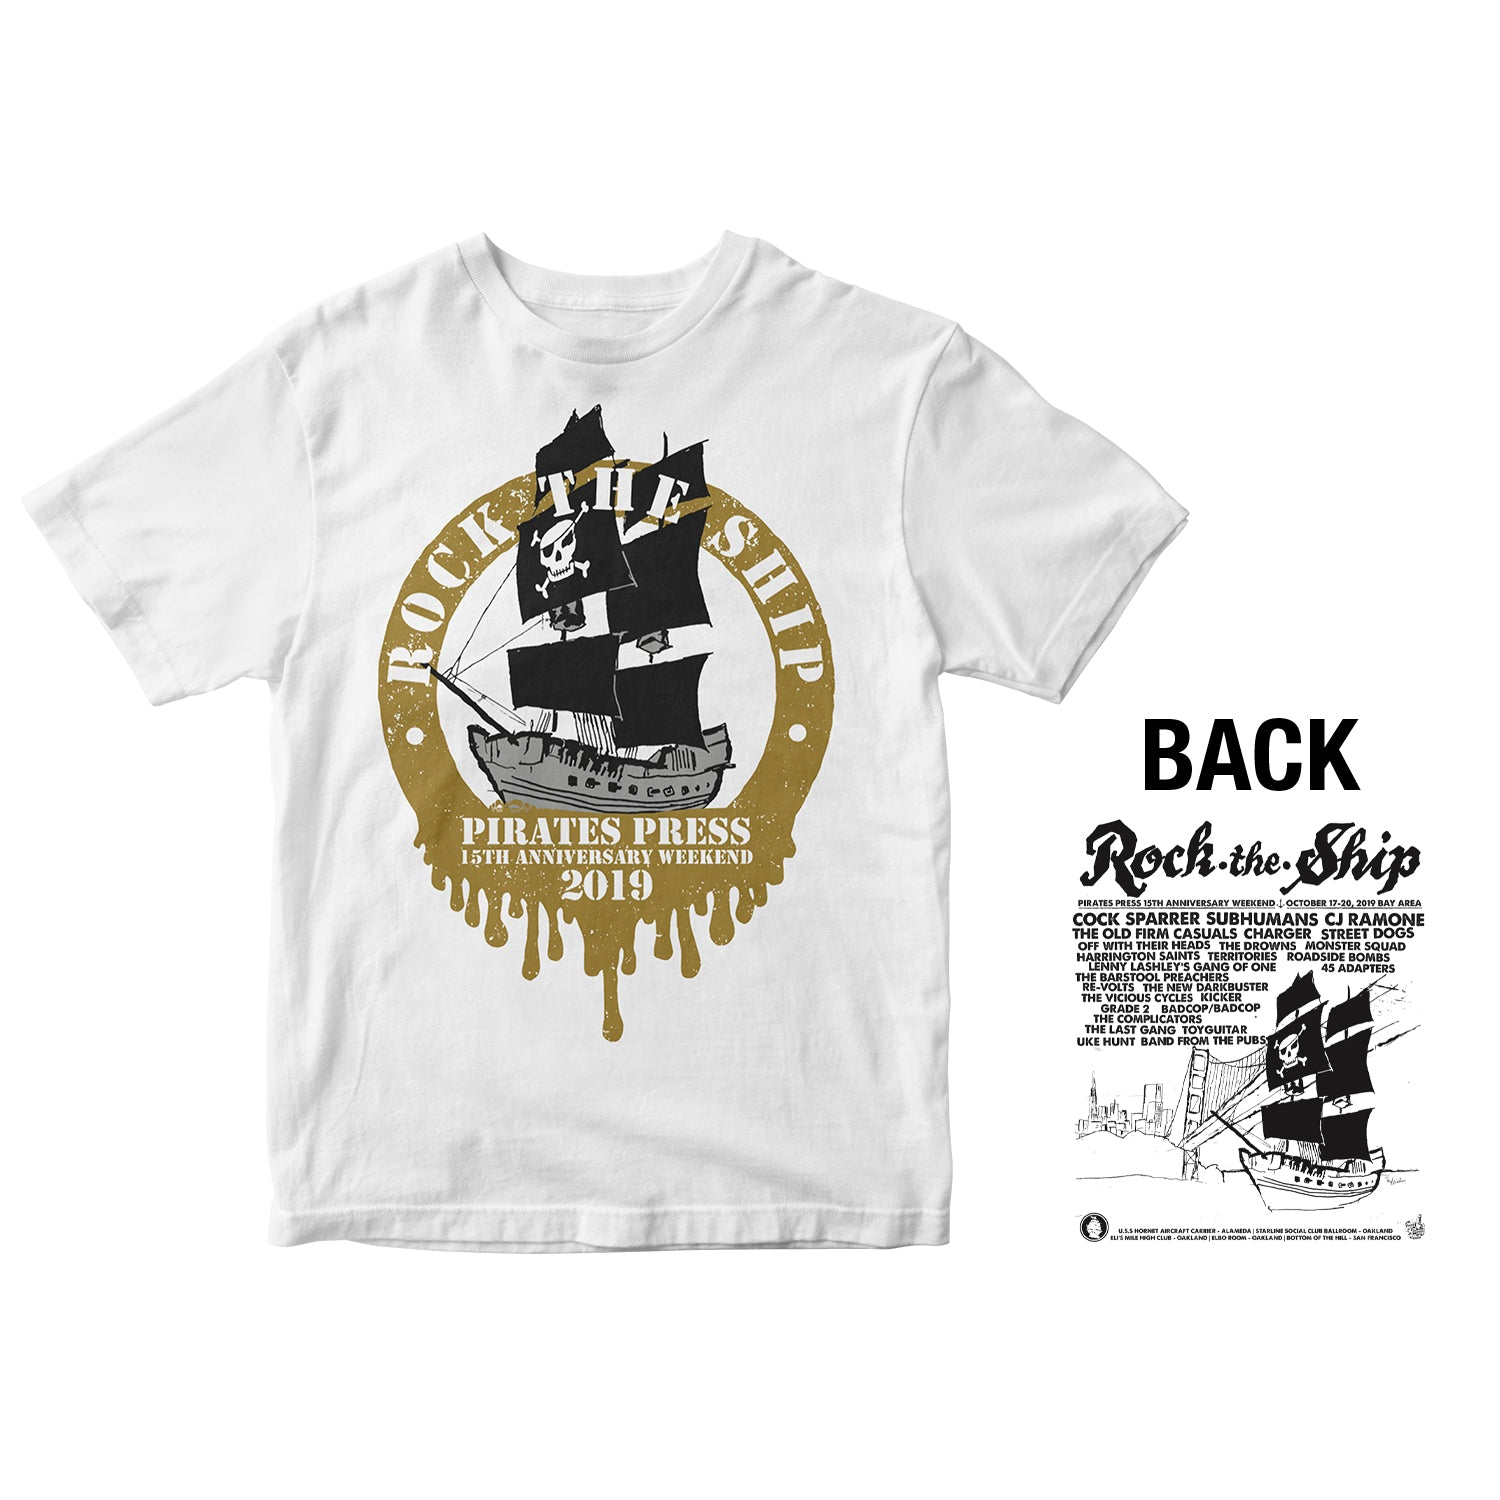 Pirates Press 15th Anniversary - Rock The Ship Ring - White - T-Shirt